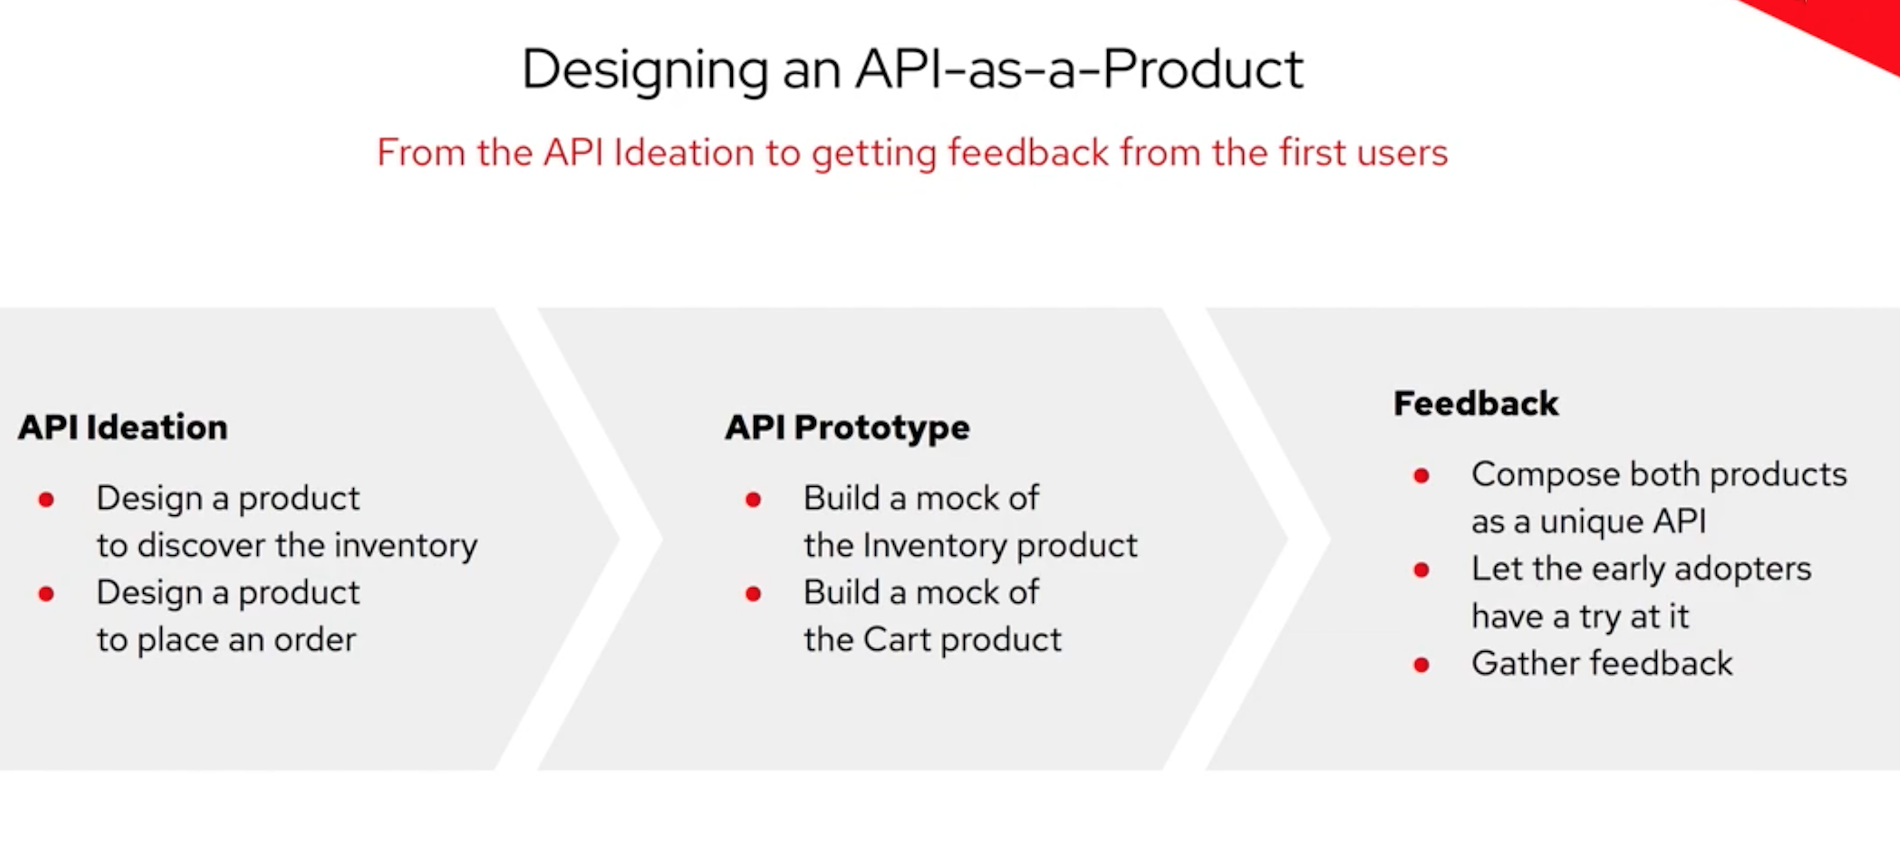 APIs as a Product: Get started in no time